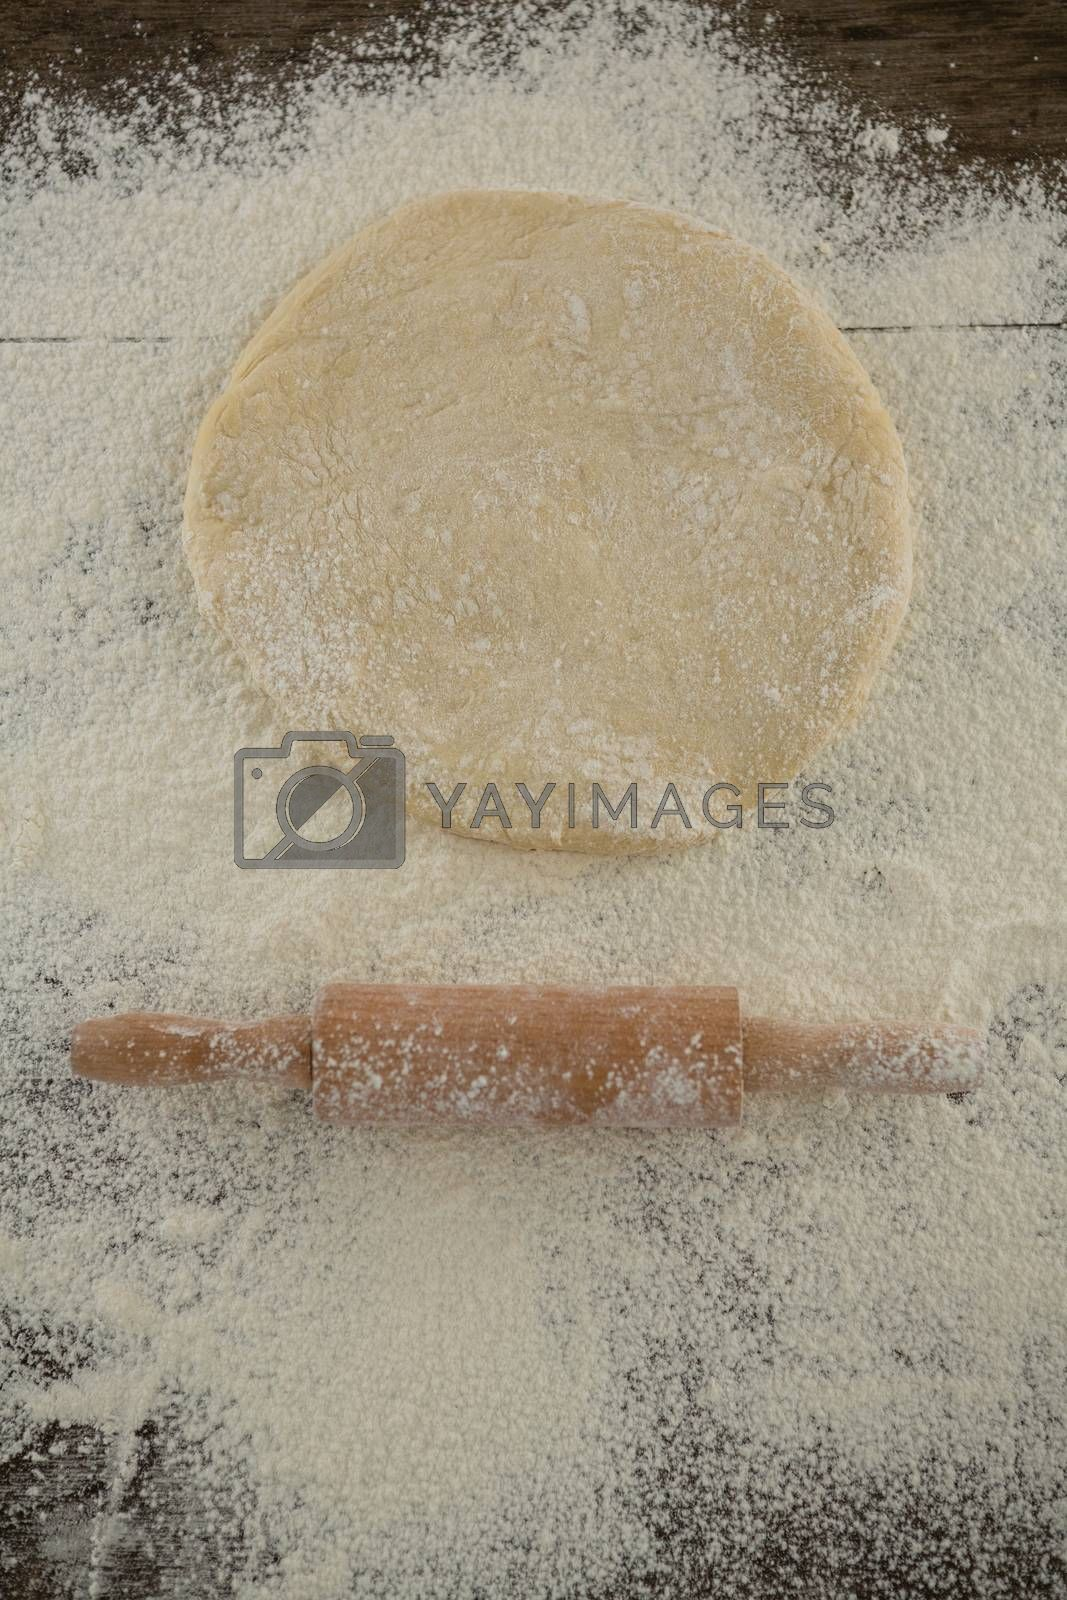 Flattened dough sprinkled with flour on a wooden table by Wavebreakmedia